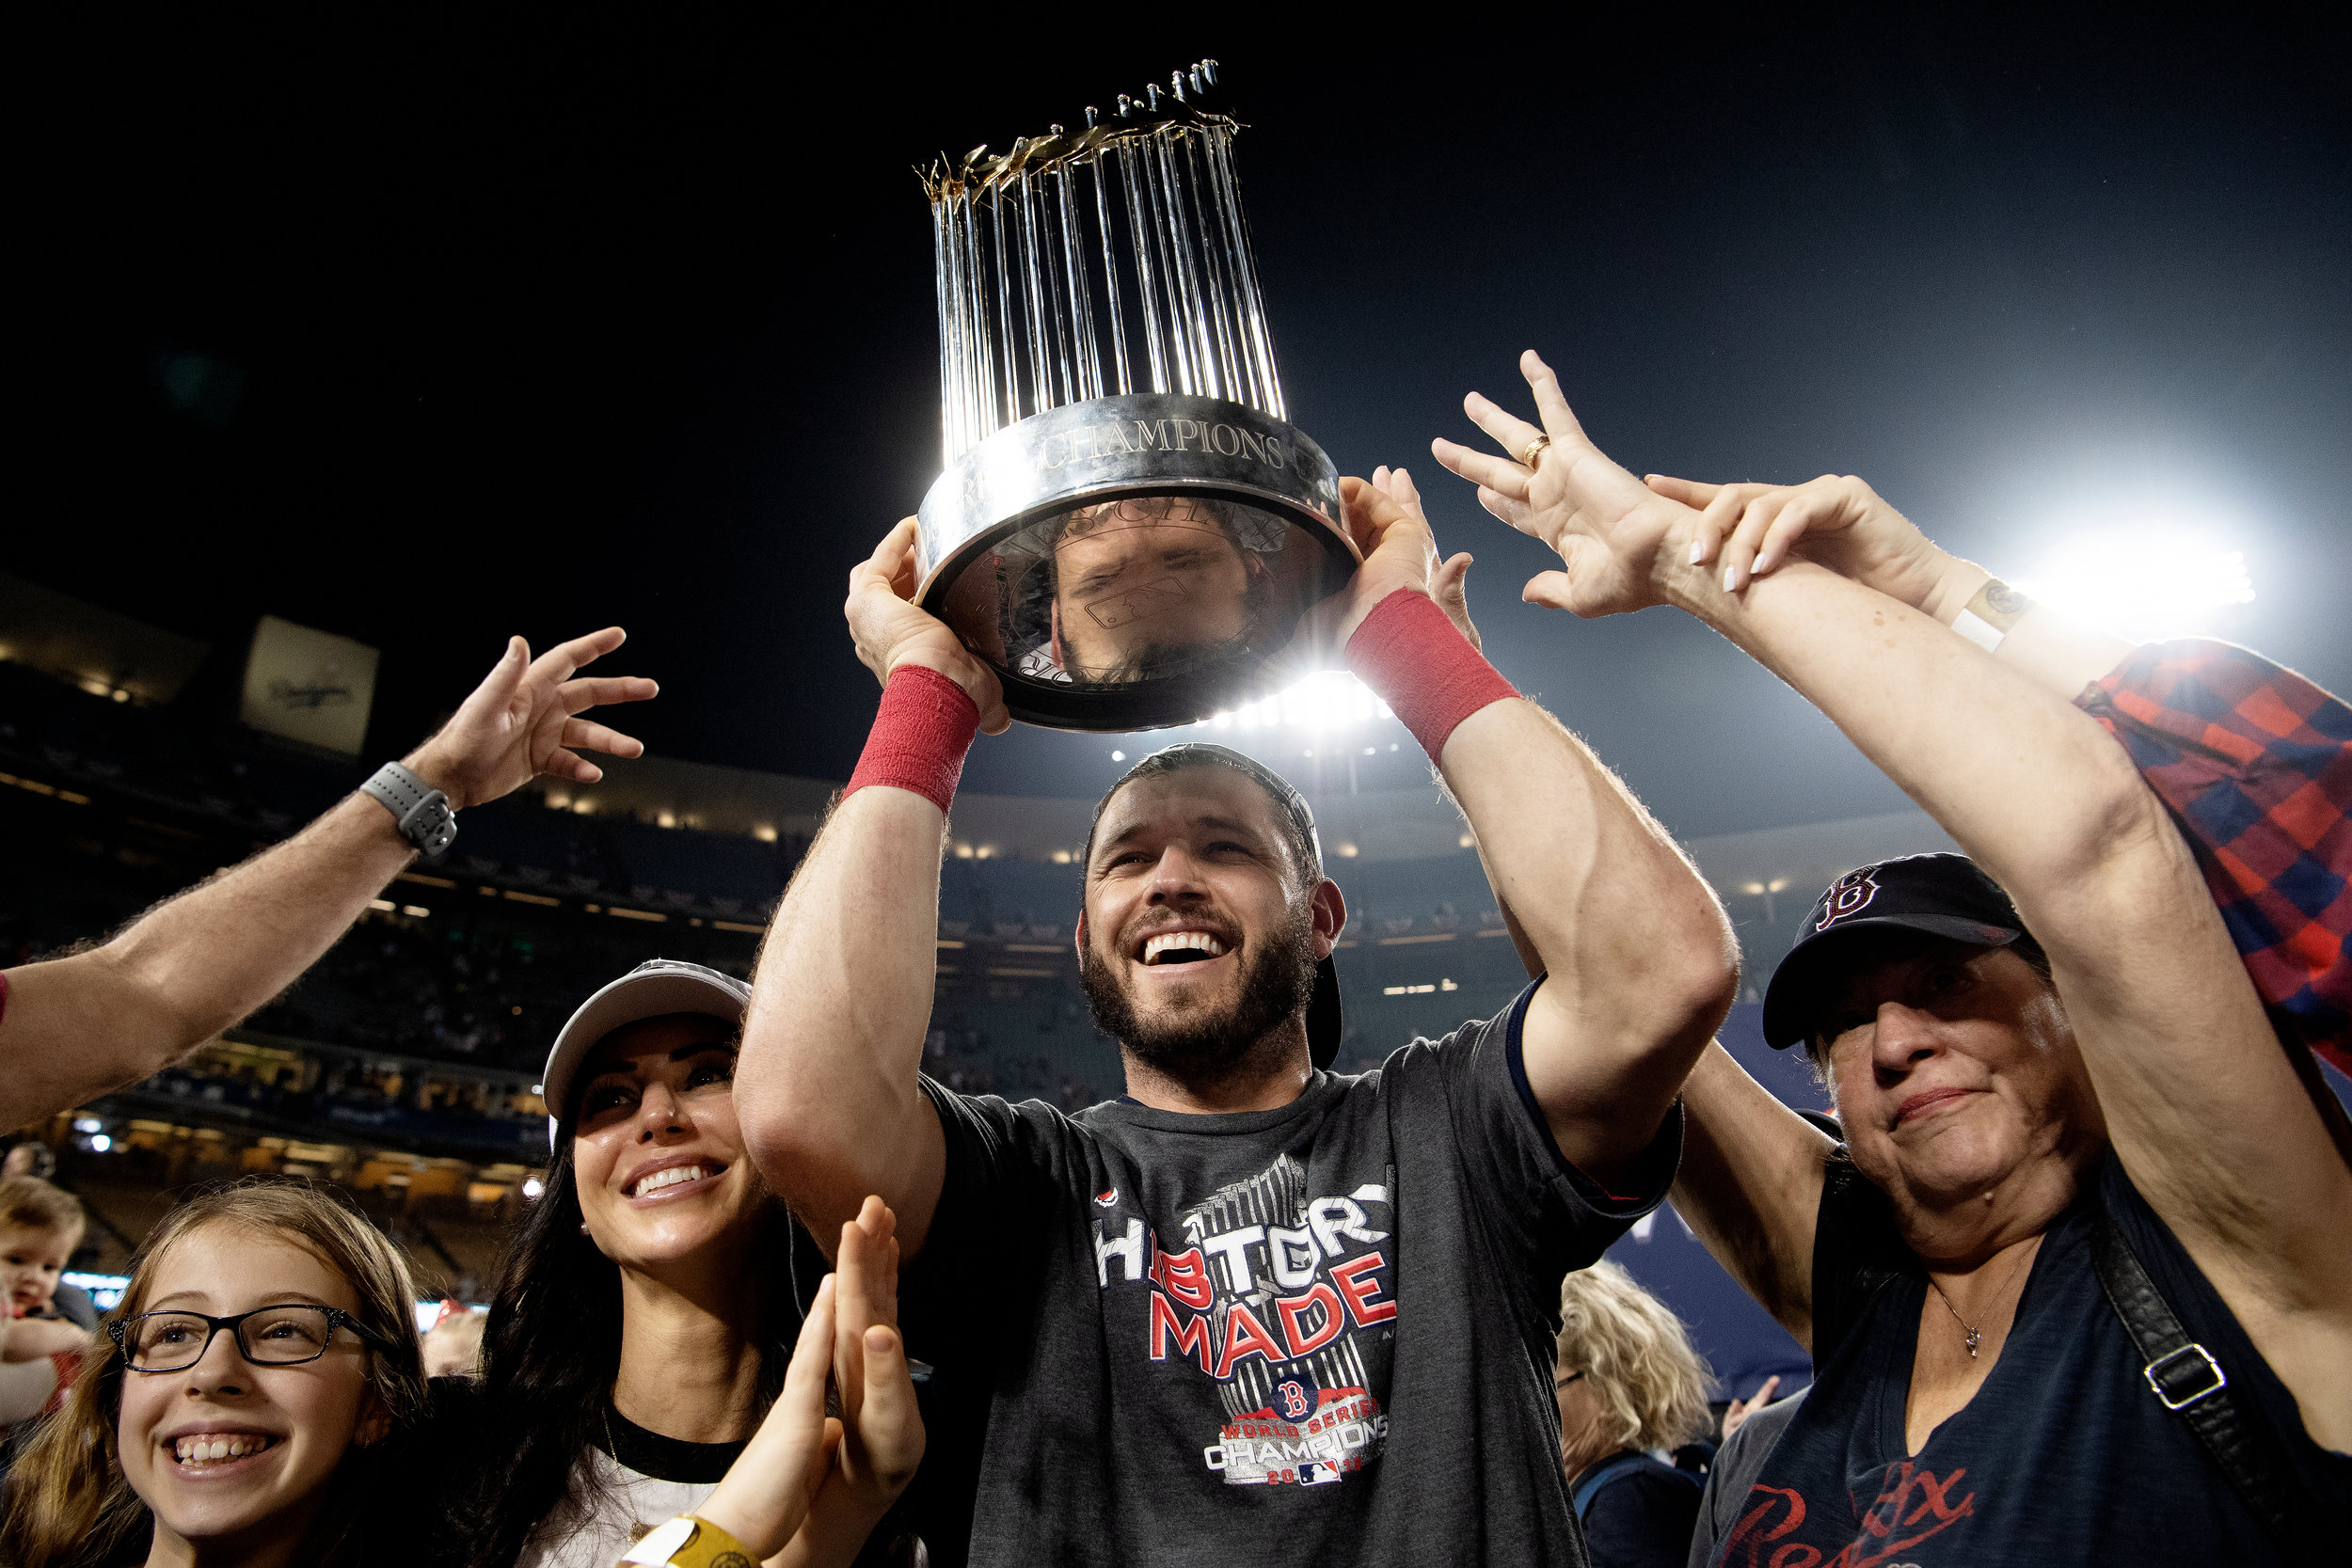 Boston Red Sox second baseman Ian Kinsler hoists the trophy over his head after winning Game 5 of the World Series versus Los Angeles Dodgers at Dodger Stadium on Sunday, October 28, 2018.